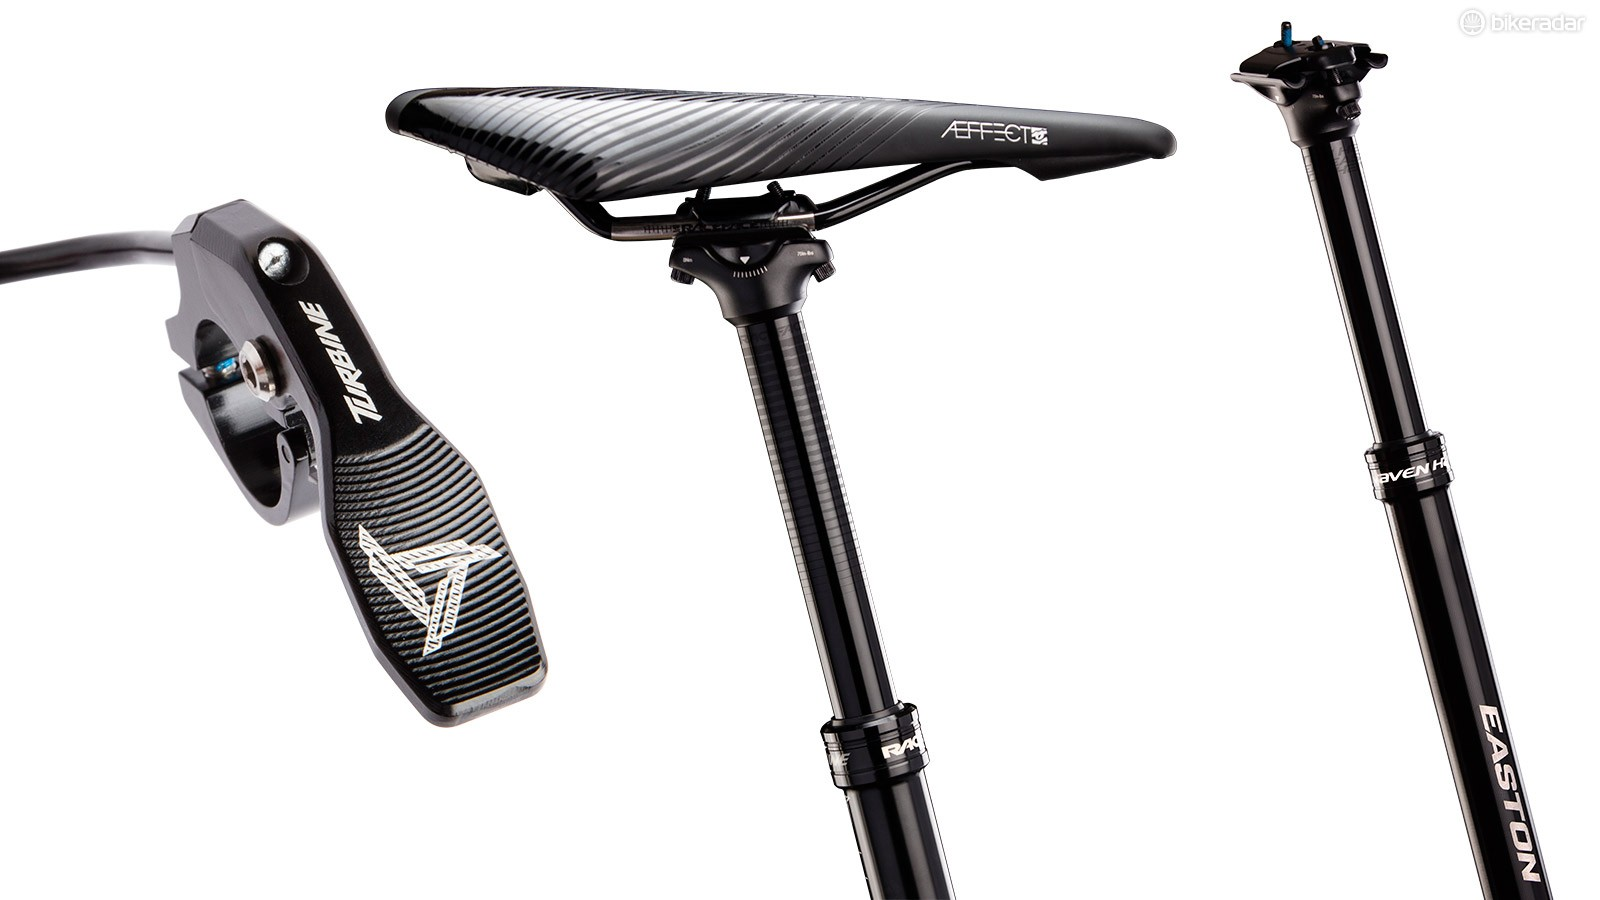 Easton and Race Face have launched a new co-branded dropper seatpost design with a novel internal design that promises to be more reliable than the norm